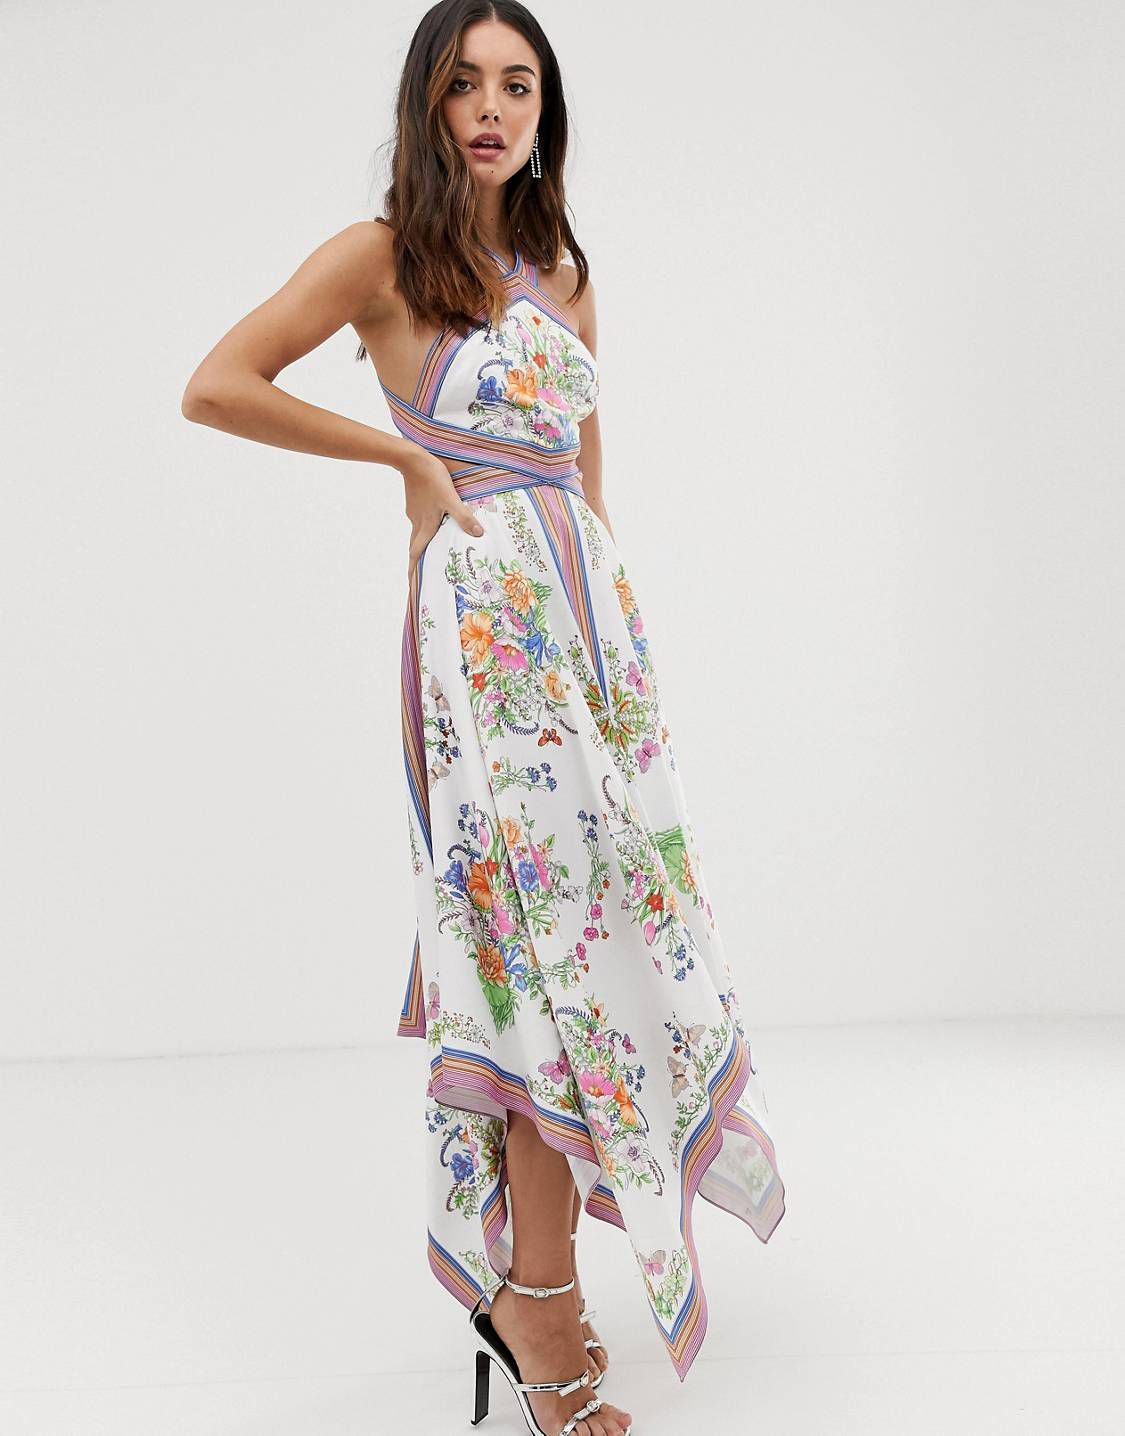 fc7de3a75b27 EDITION scarf print halter midi dress with cutout sides in 2019 | Fashion -  Unique & Beautiful Finds | Asos, Dresses, Date dresses